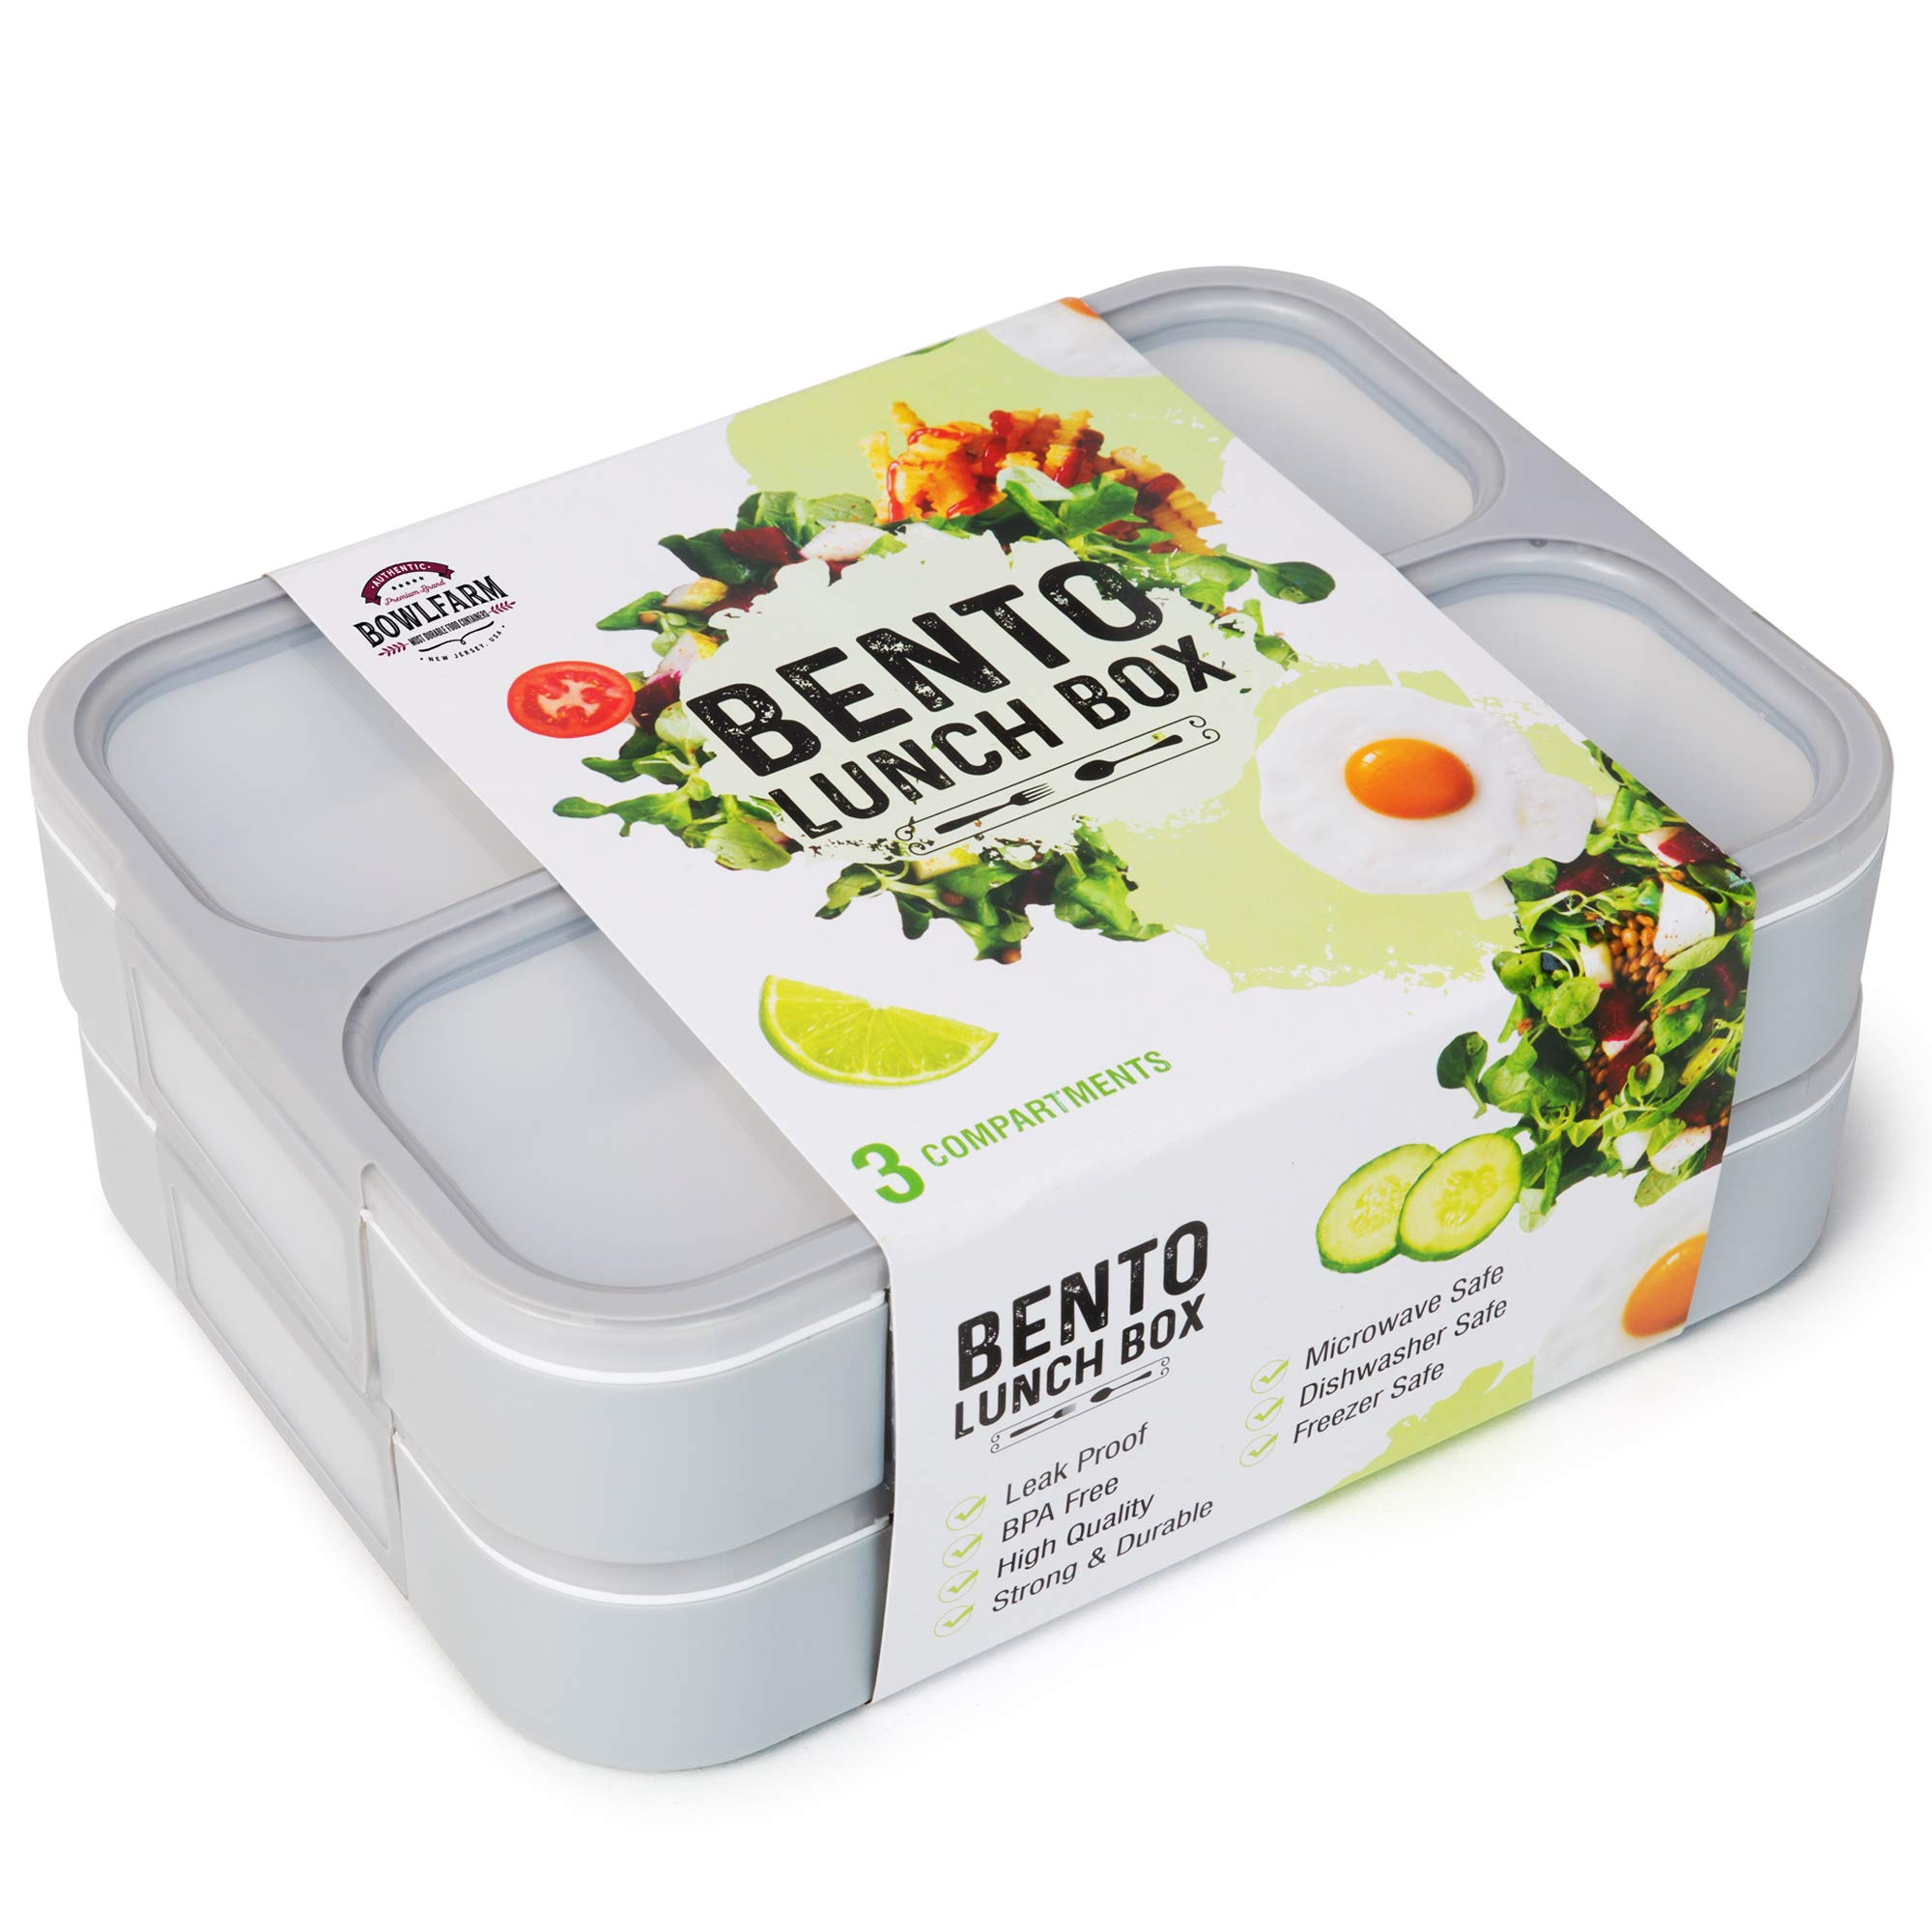 Deluxe Bento Lunch Box Set, 2 Leakproof Containers With 3 Compartments, FDA Approved and BPA-Free Meal Box For Adults and Children, Ideal For Food Prep and Meal Planning, By Bowlfarm